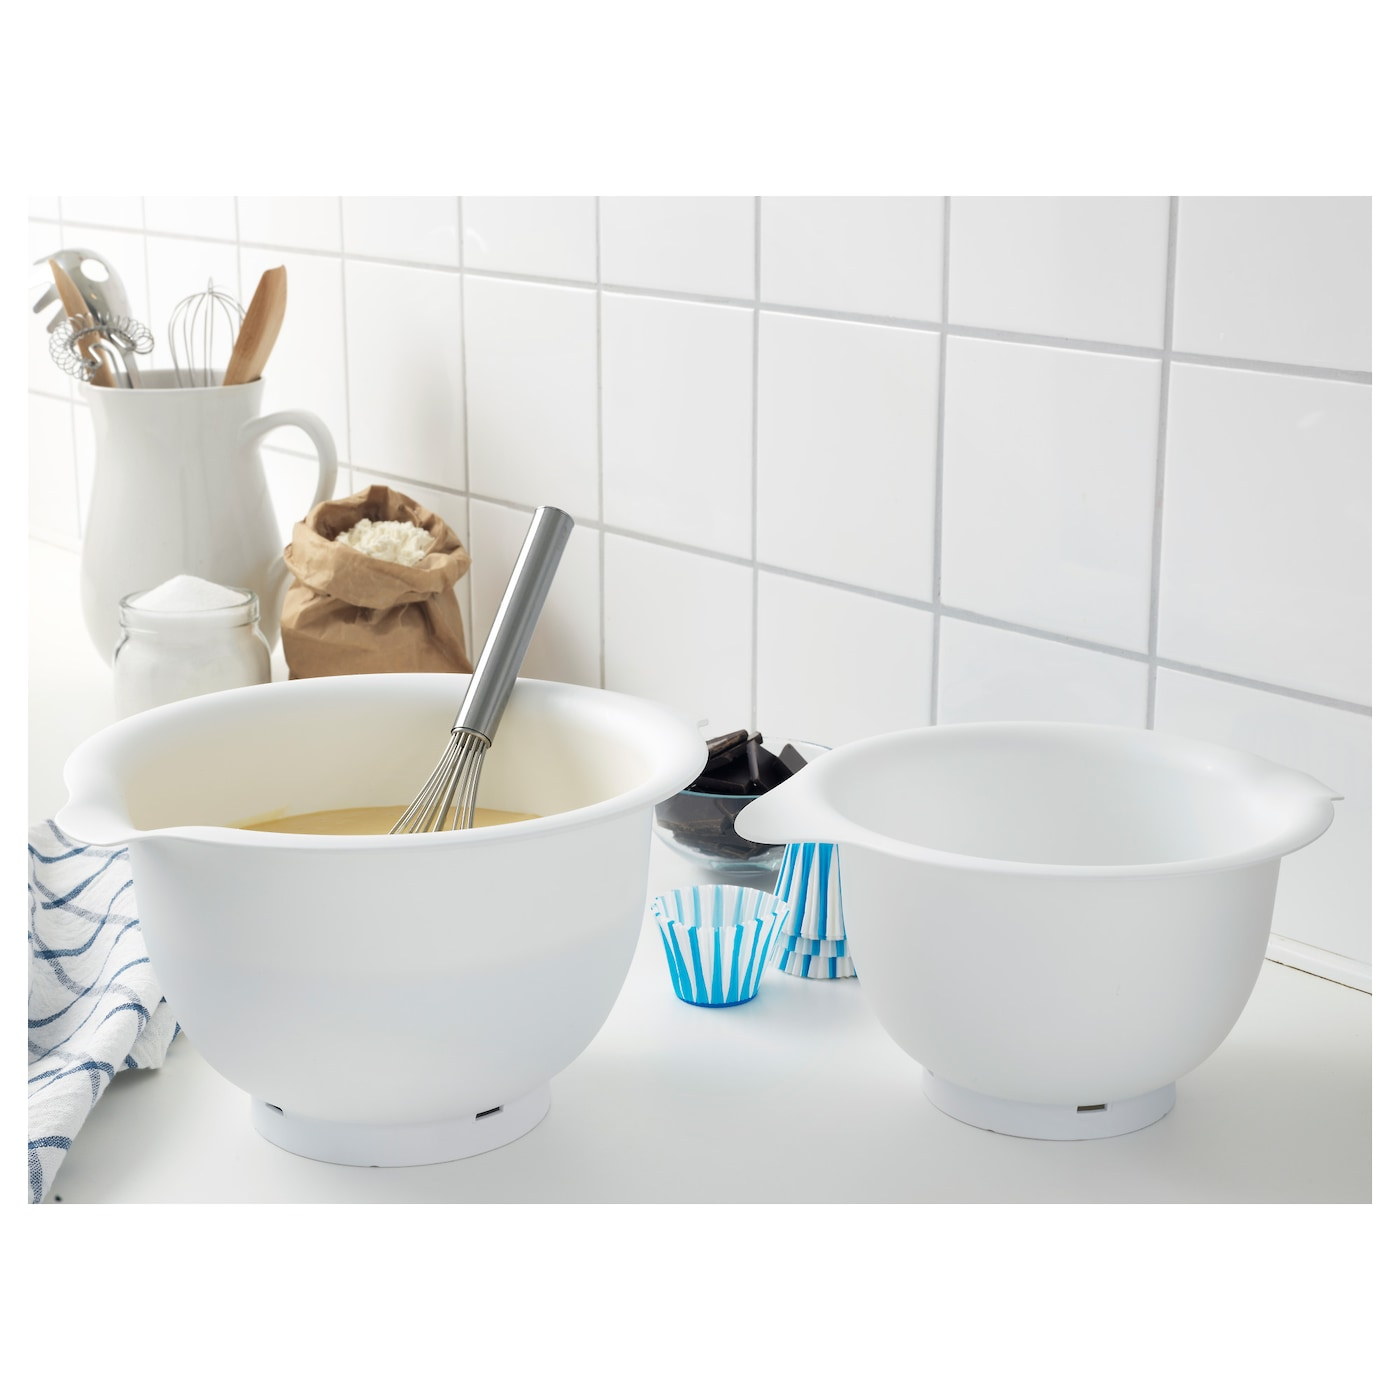 vispad mixing bowl set of 2 white ikea. Black Bedroom Furniture Sets. Home Design Ideas